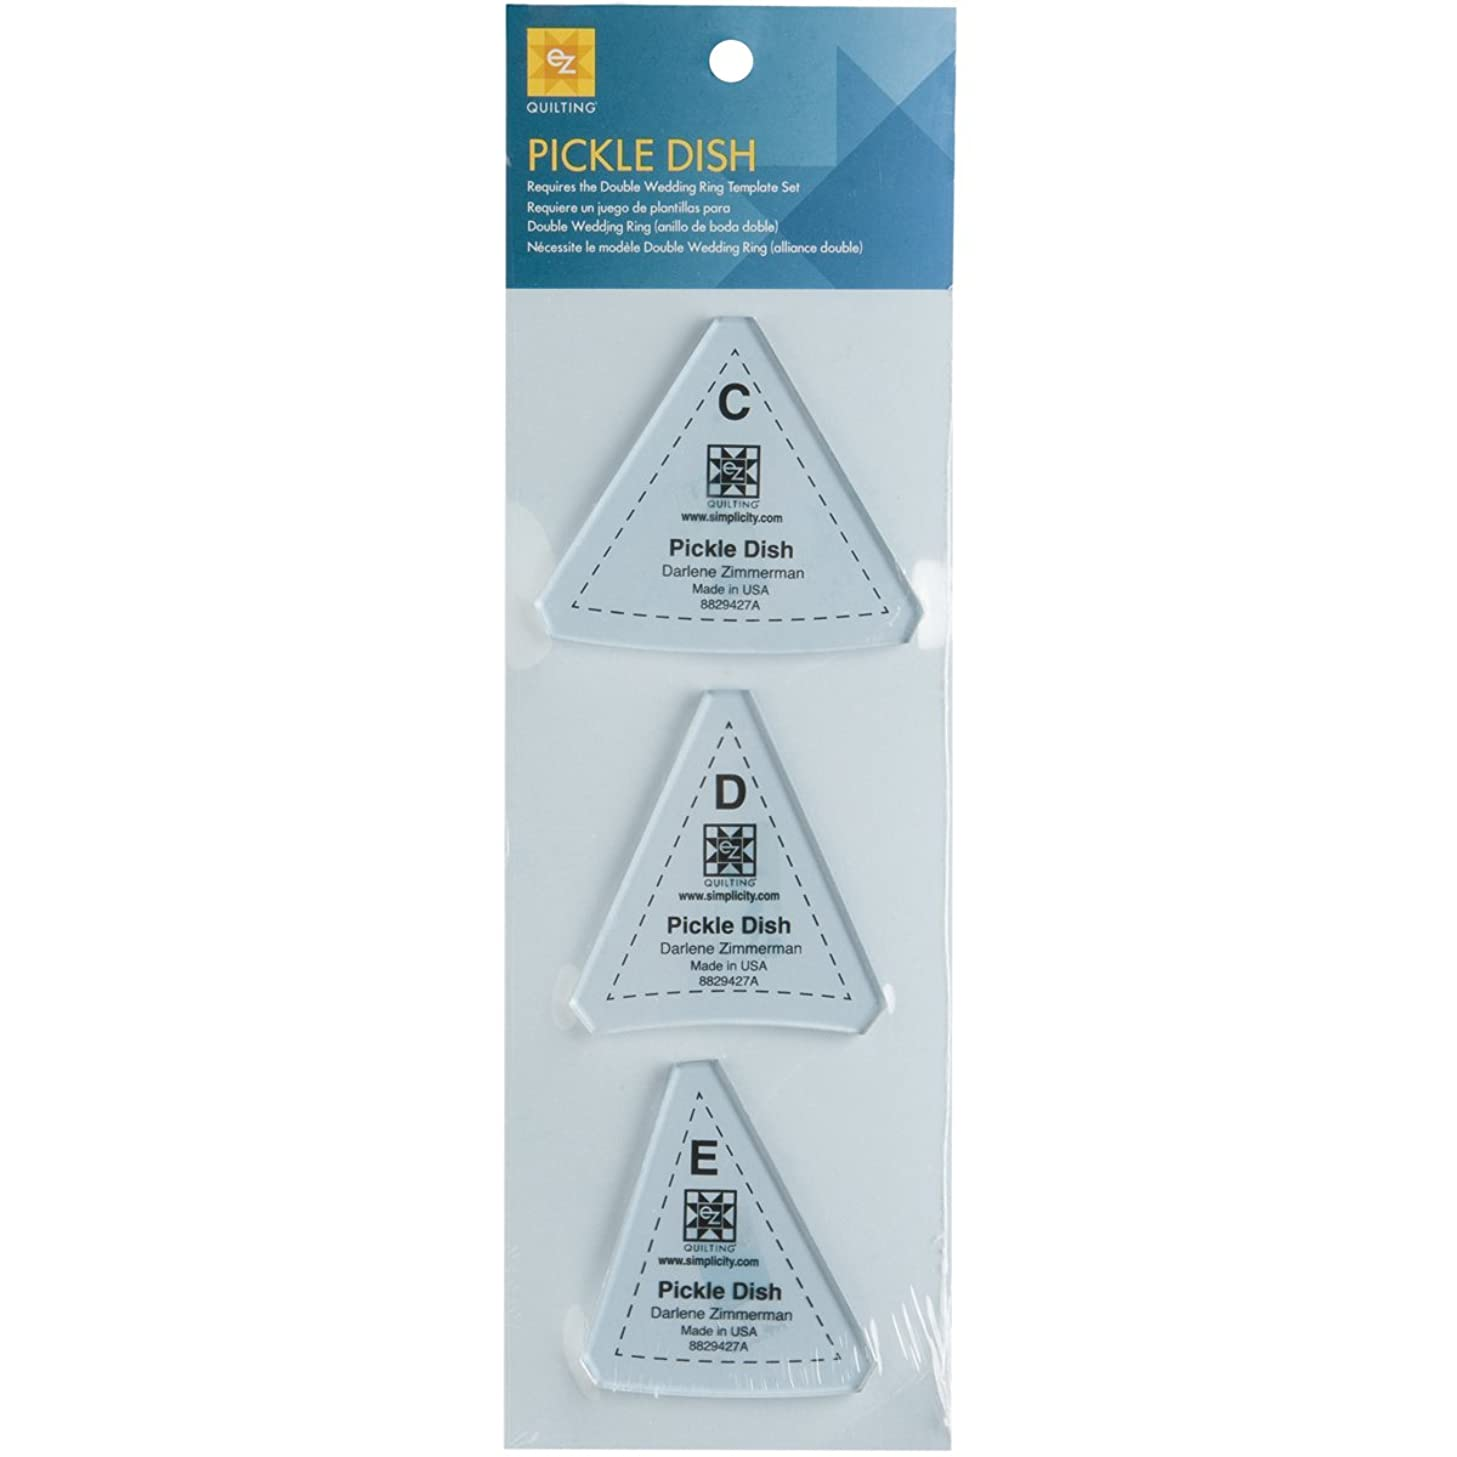 Wrights 8829427A Pickle Dish Template, 3-Pack